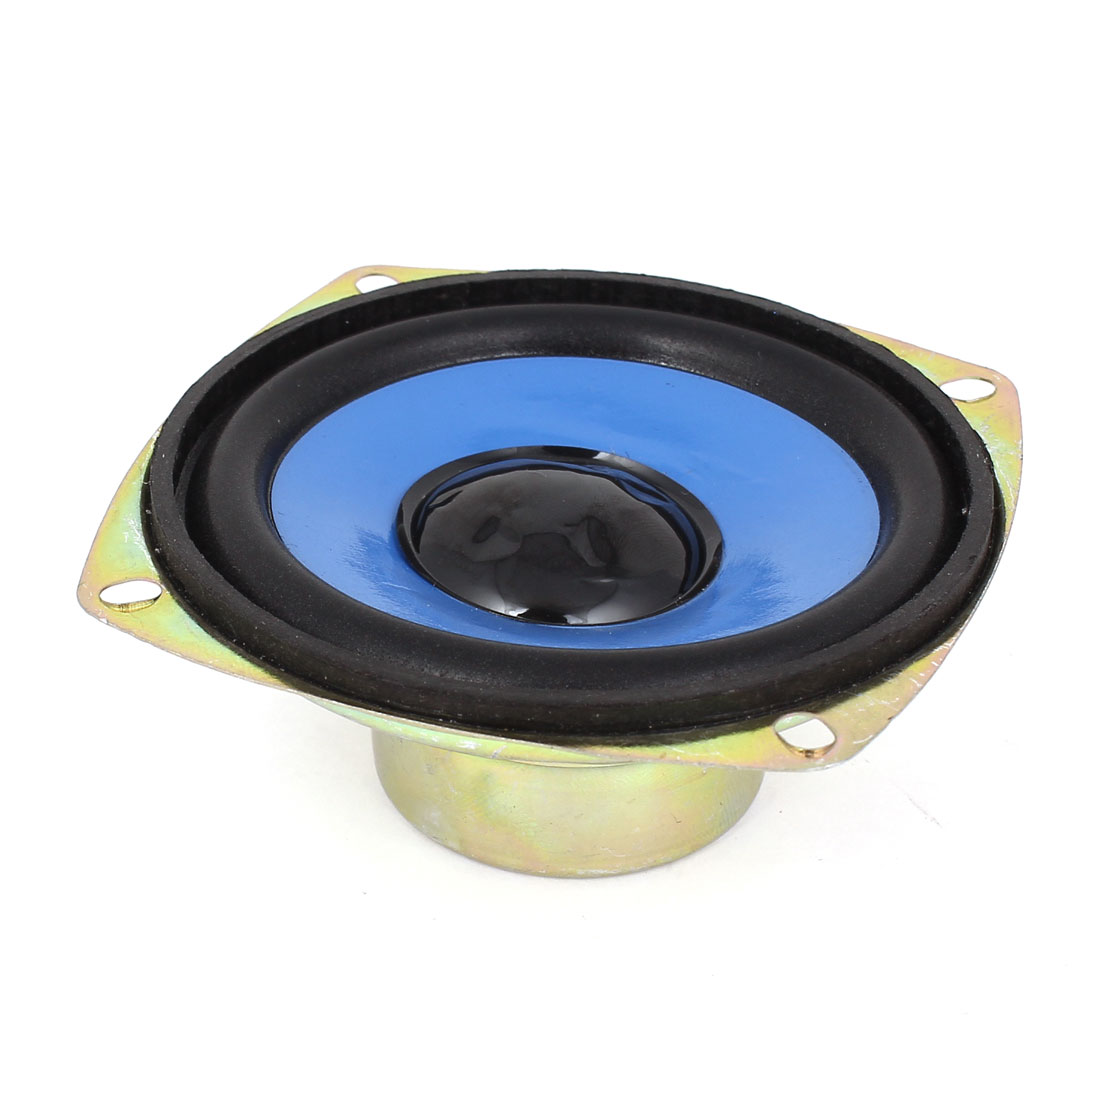 4 Ohm 5W 77mm Metal Shell Toys Interphone External Magnet Speaker